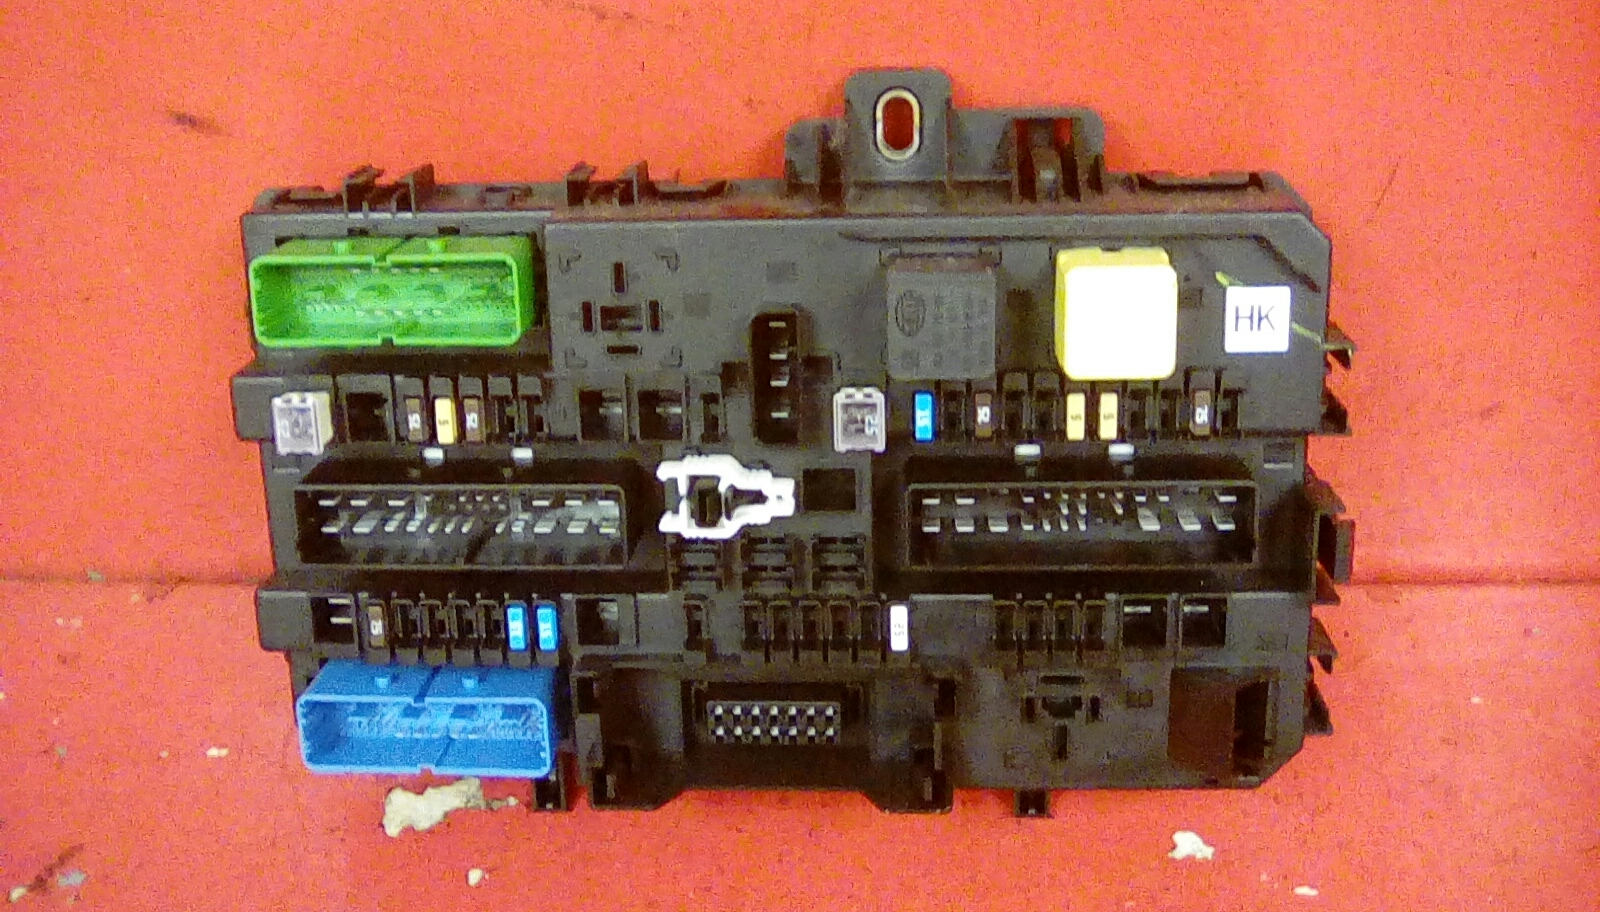 hight resolution of vauxhall astra mk5 h zafira b rear electric control rec hk fuse vauxhall zafira b rear fuse box